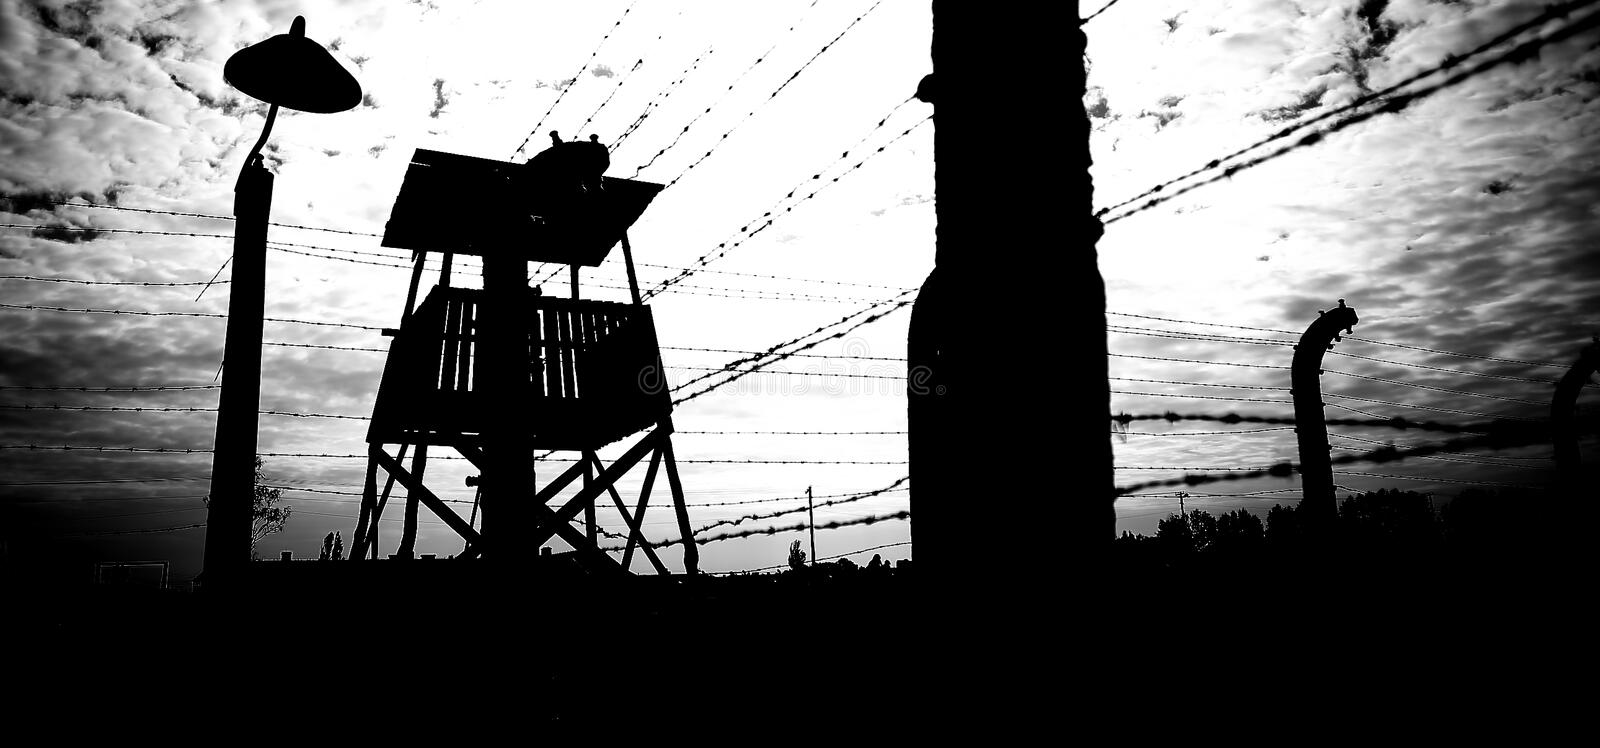 Concentration Camp Auschwitz Birkenau. royalty free stock photos